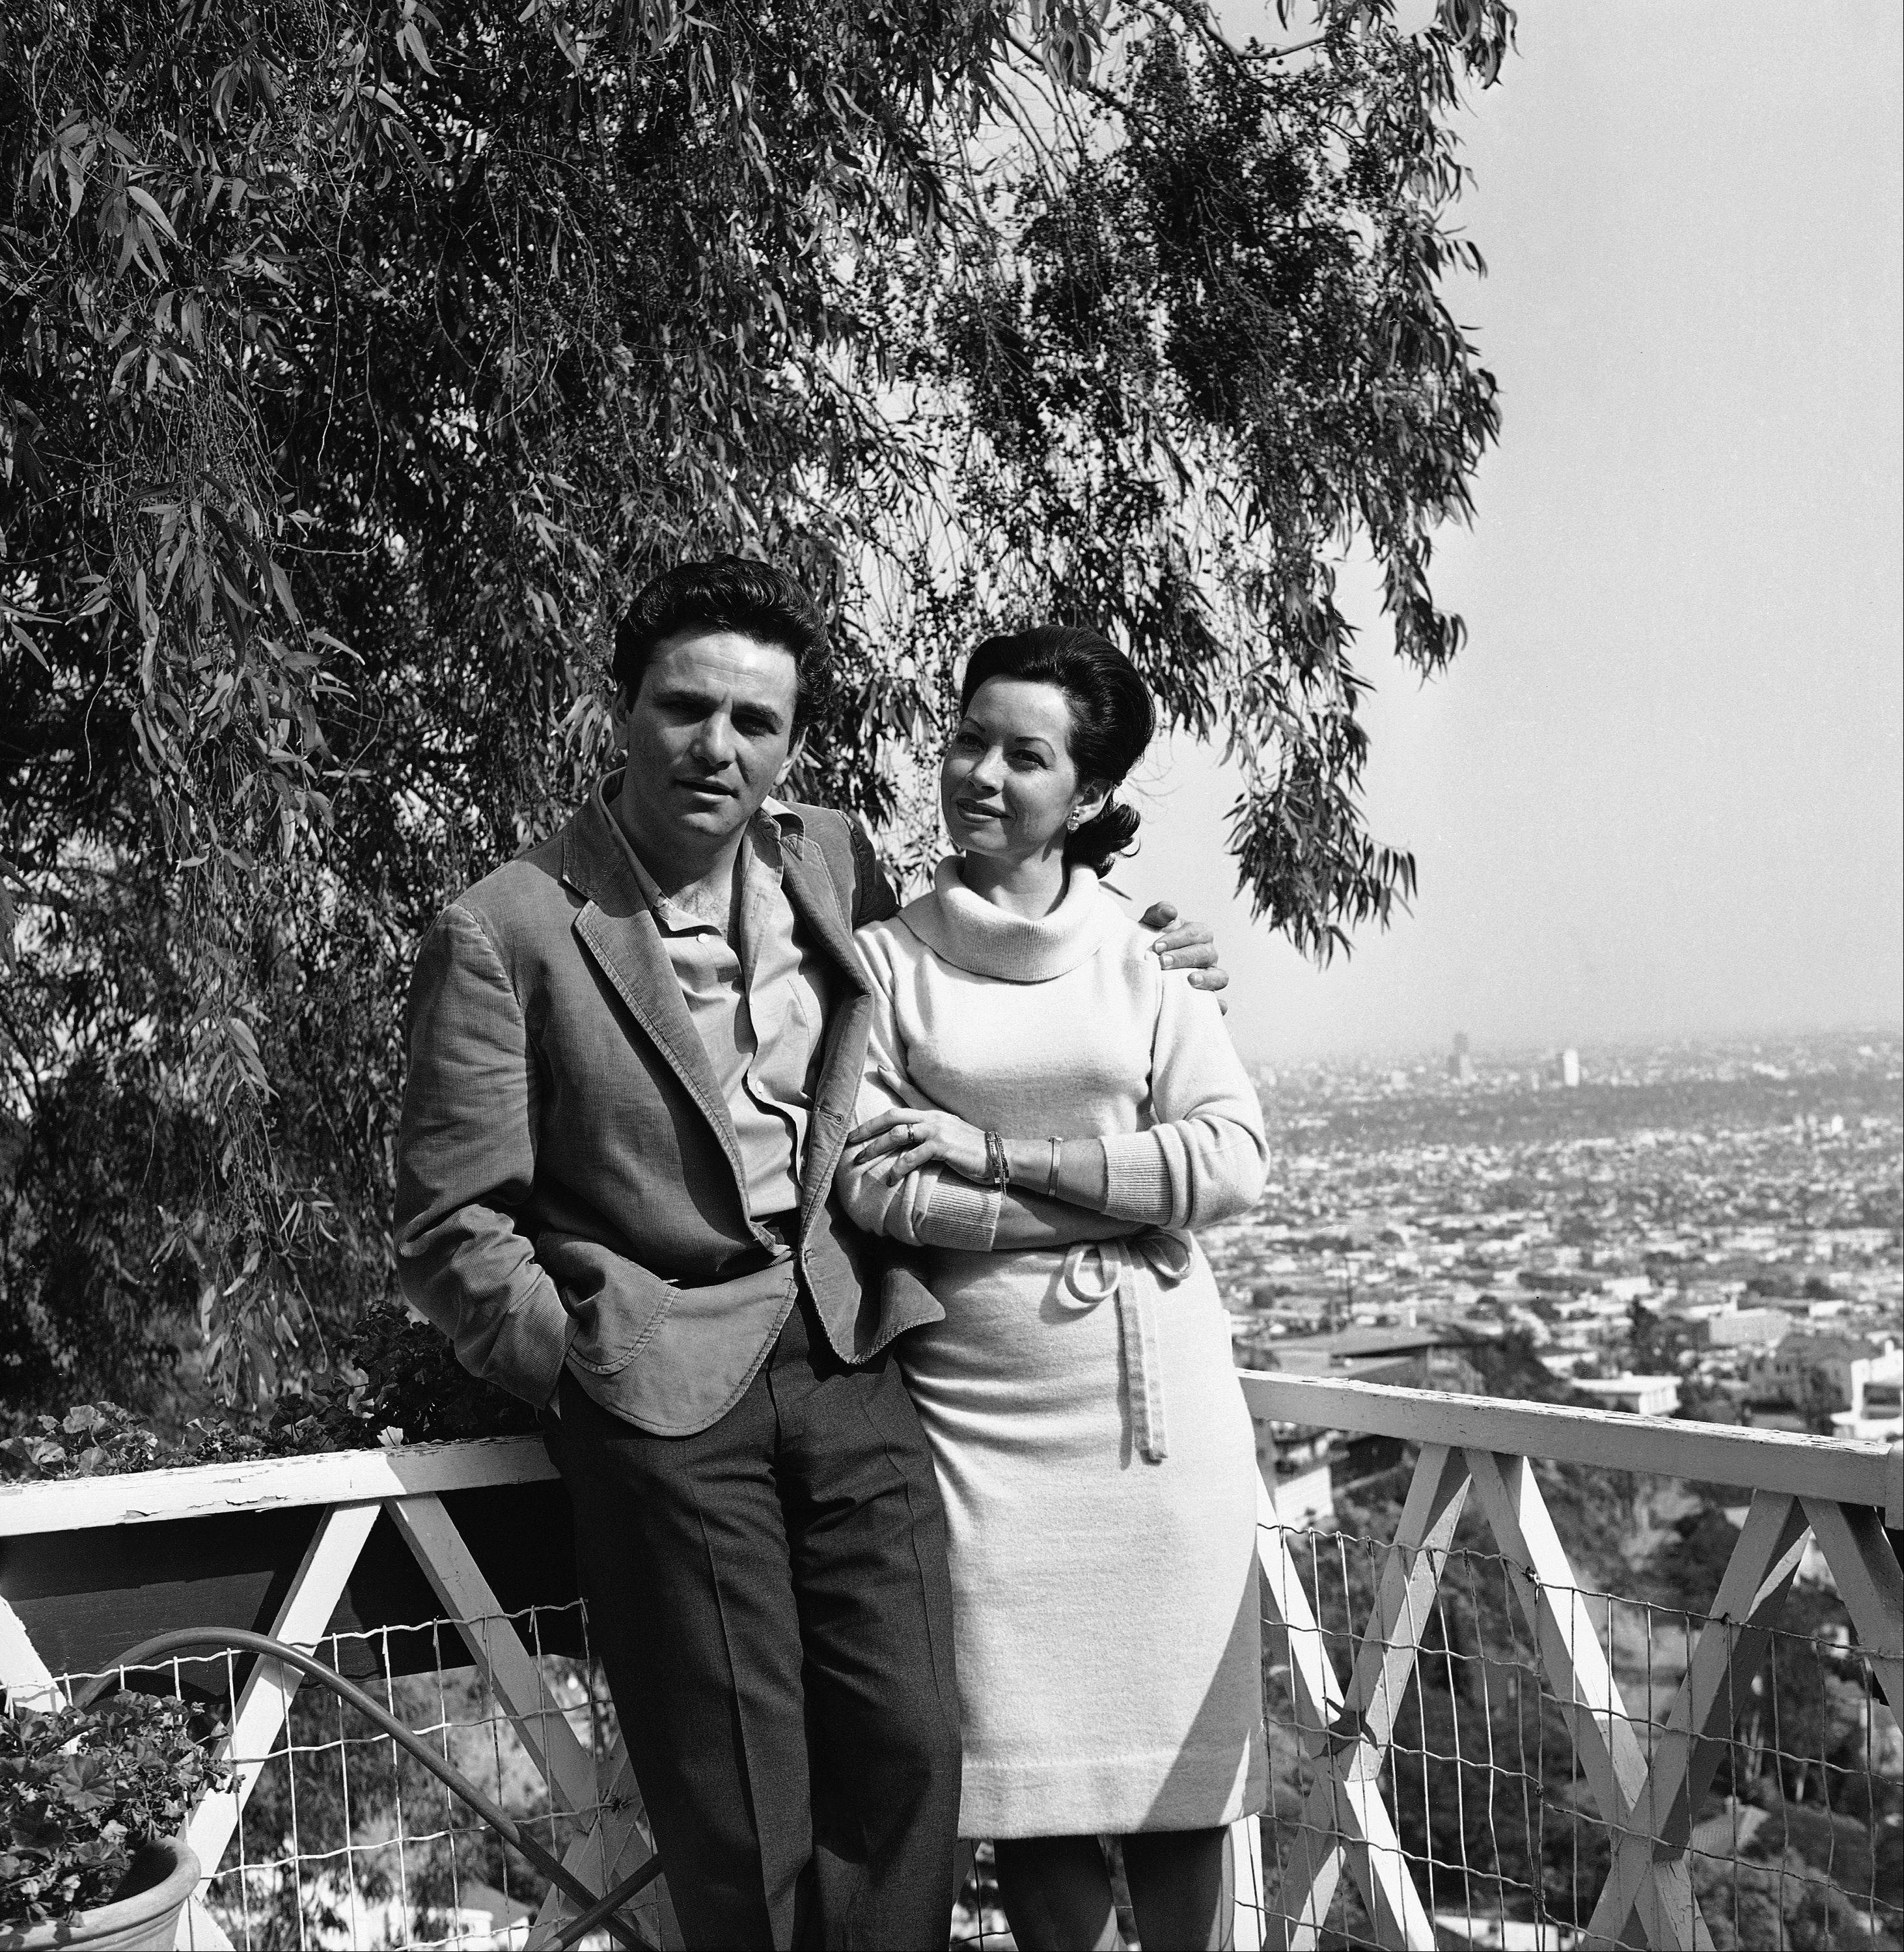 Actor Peter Falk with his wife Alyce at their Holllywood, Calif. home on March 10, 1965. The view from this balcony is Beverly Hills and West Hollywood.